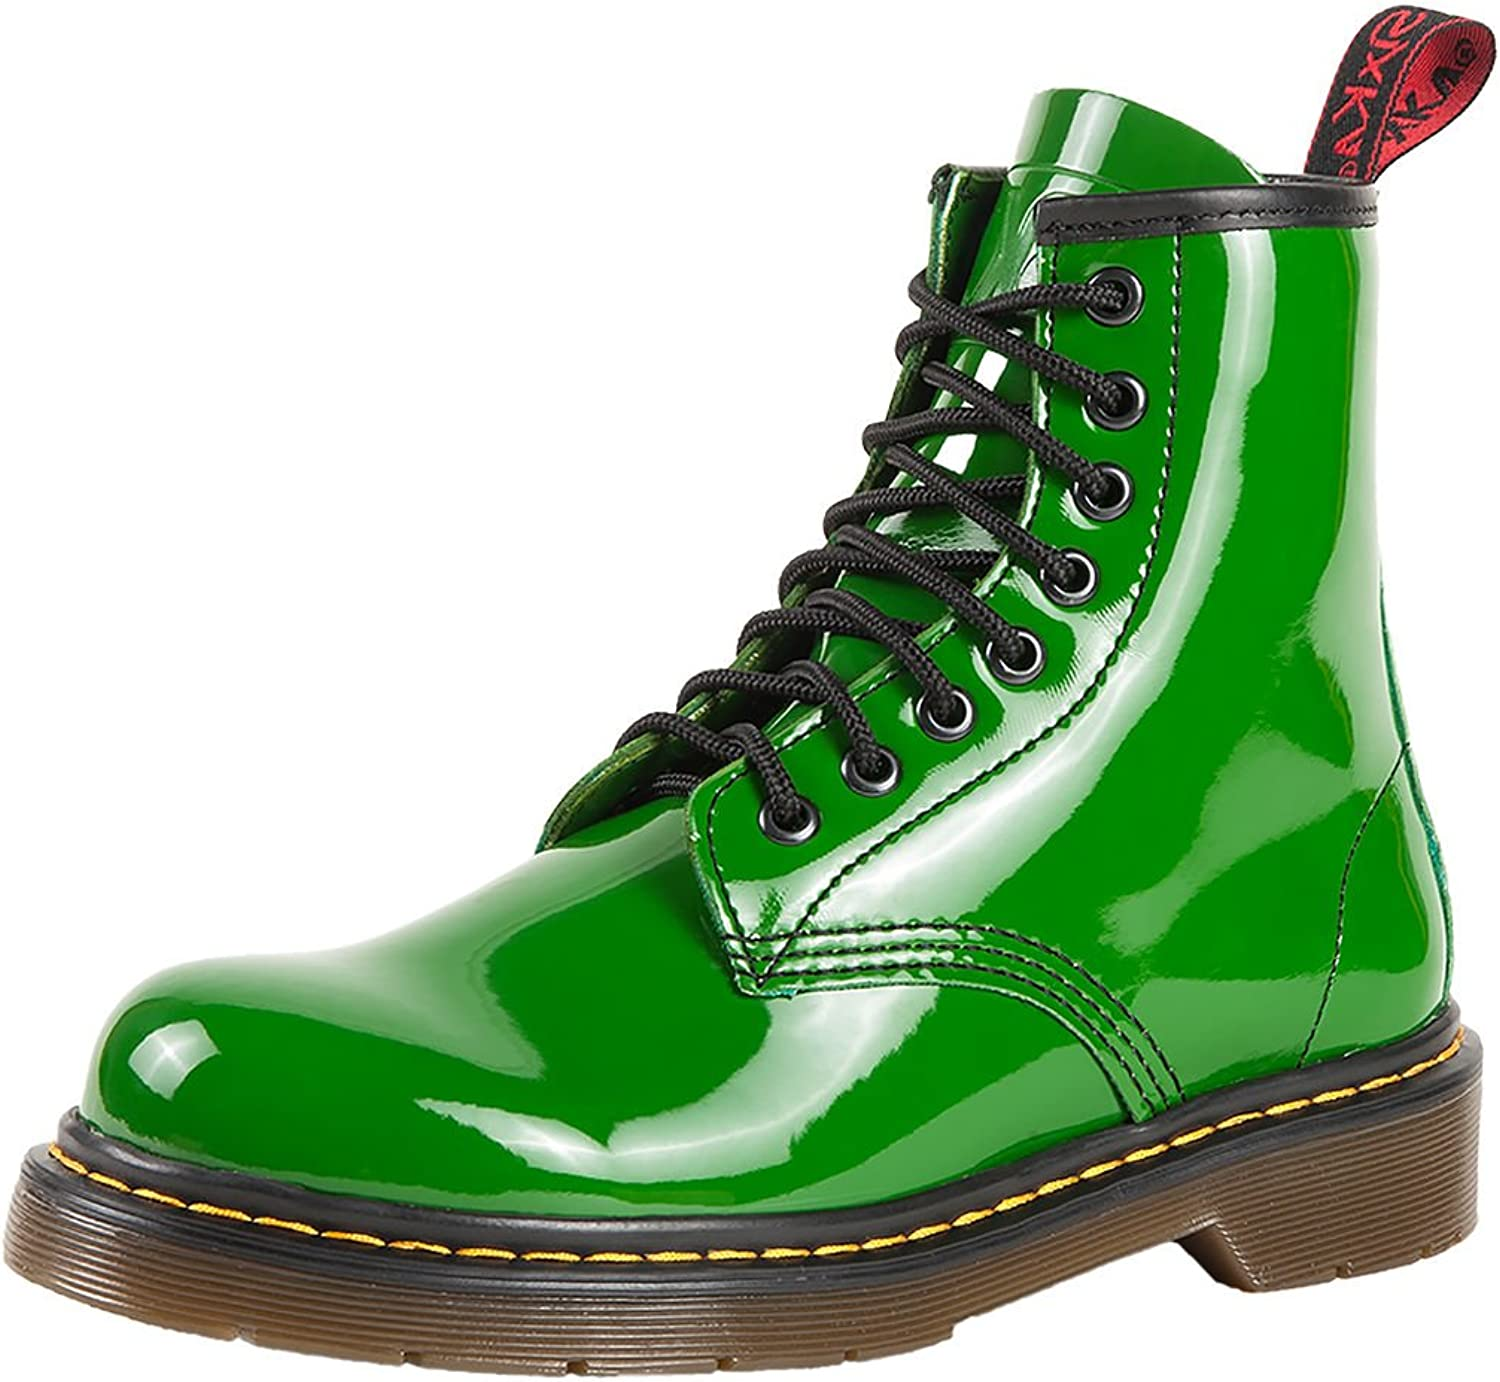 SK7 Women's Hot Stylish Coventry Gloss Leather Fashion Ankle Boots Frida Green - 8.5